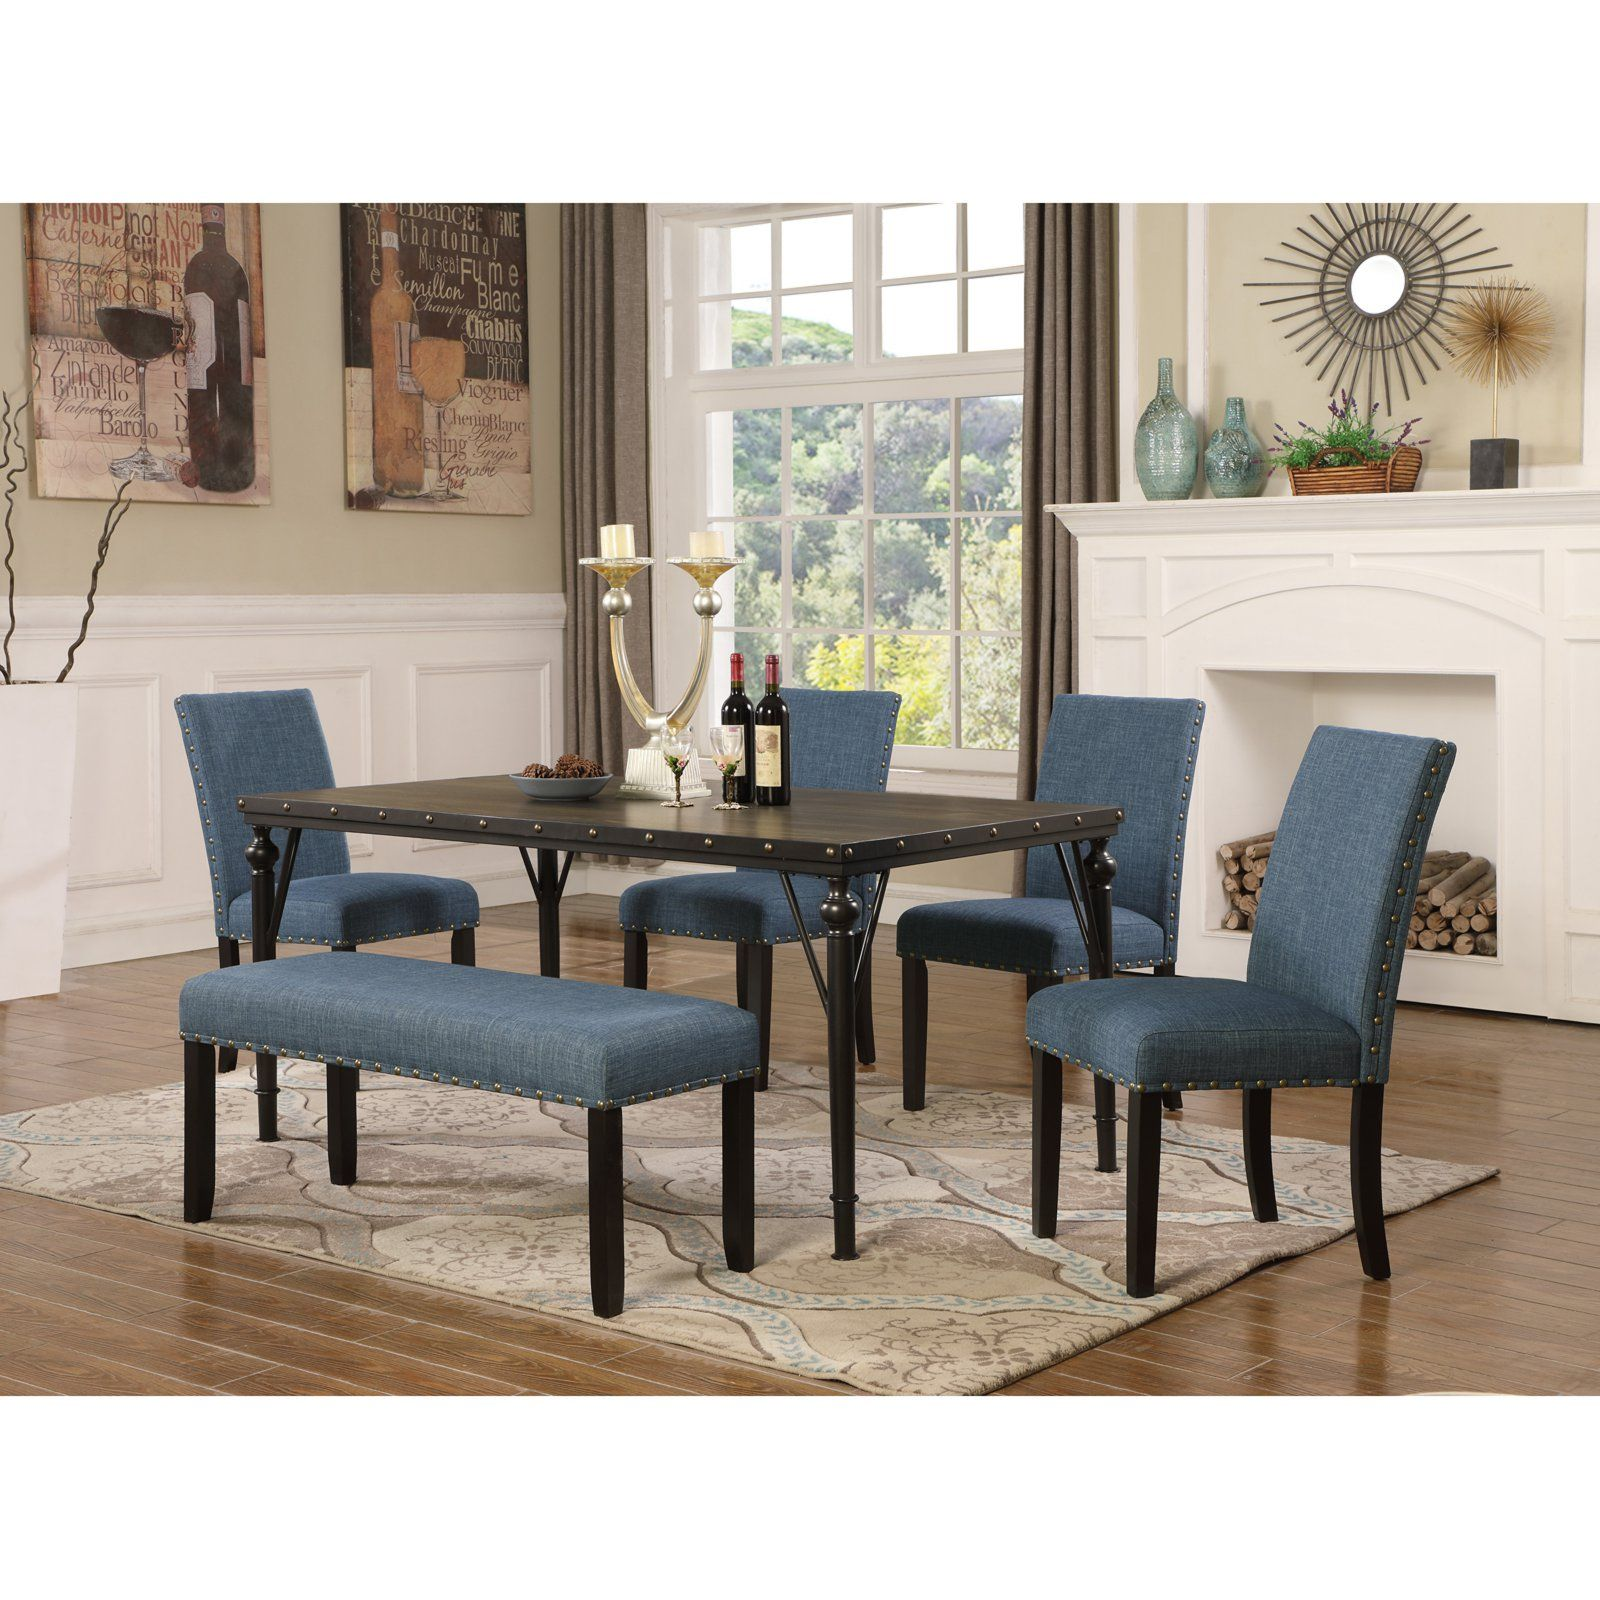 Groovy Roundhill Furniture Biony 6 Piece Wooden Dining Table Set In Andrewgaddart Wooden Chair Designs For Living Room Andrewgaddartcom